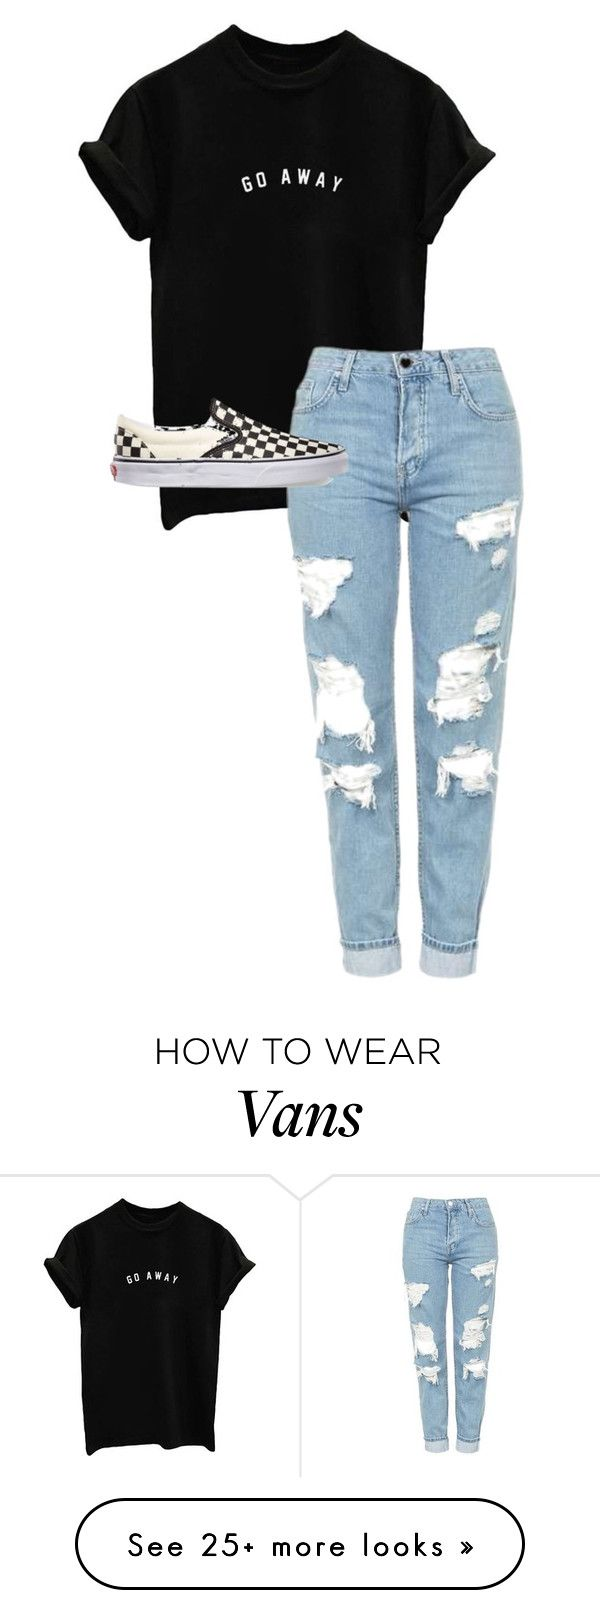 """./.../.../.../..././..."" by anna-mae-equils on Polyvore featuring Topshop and Vans"